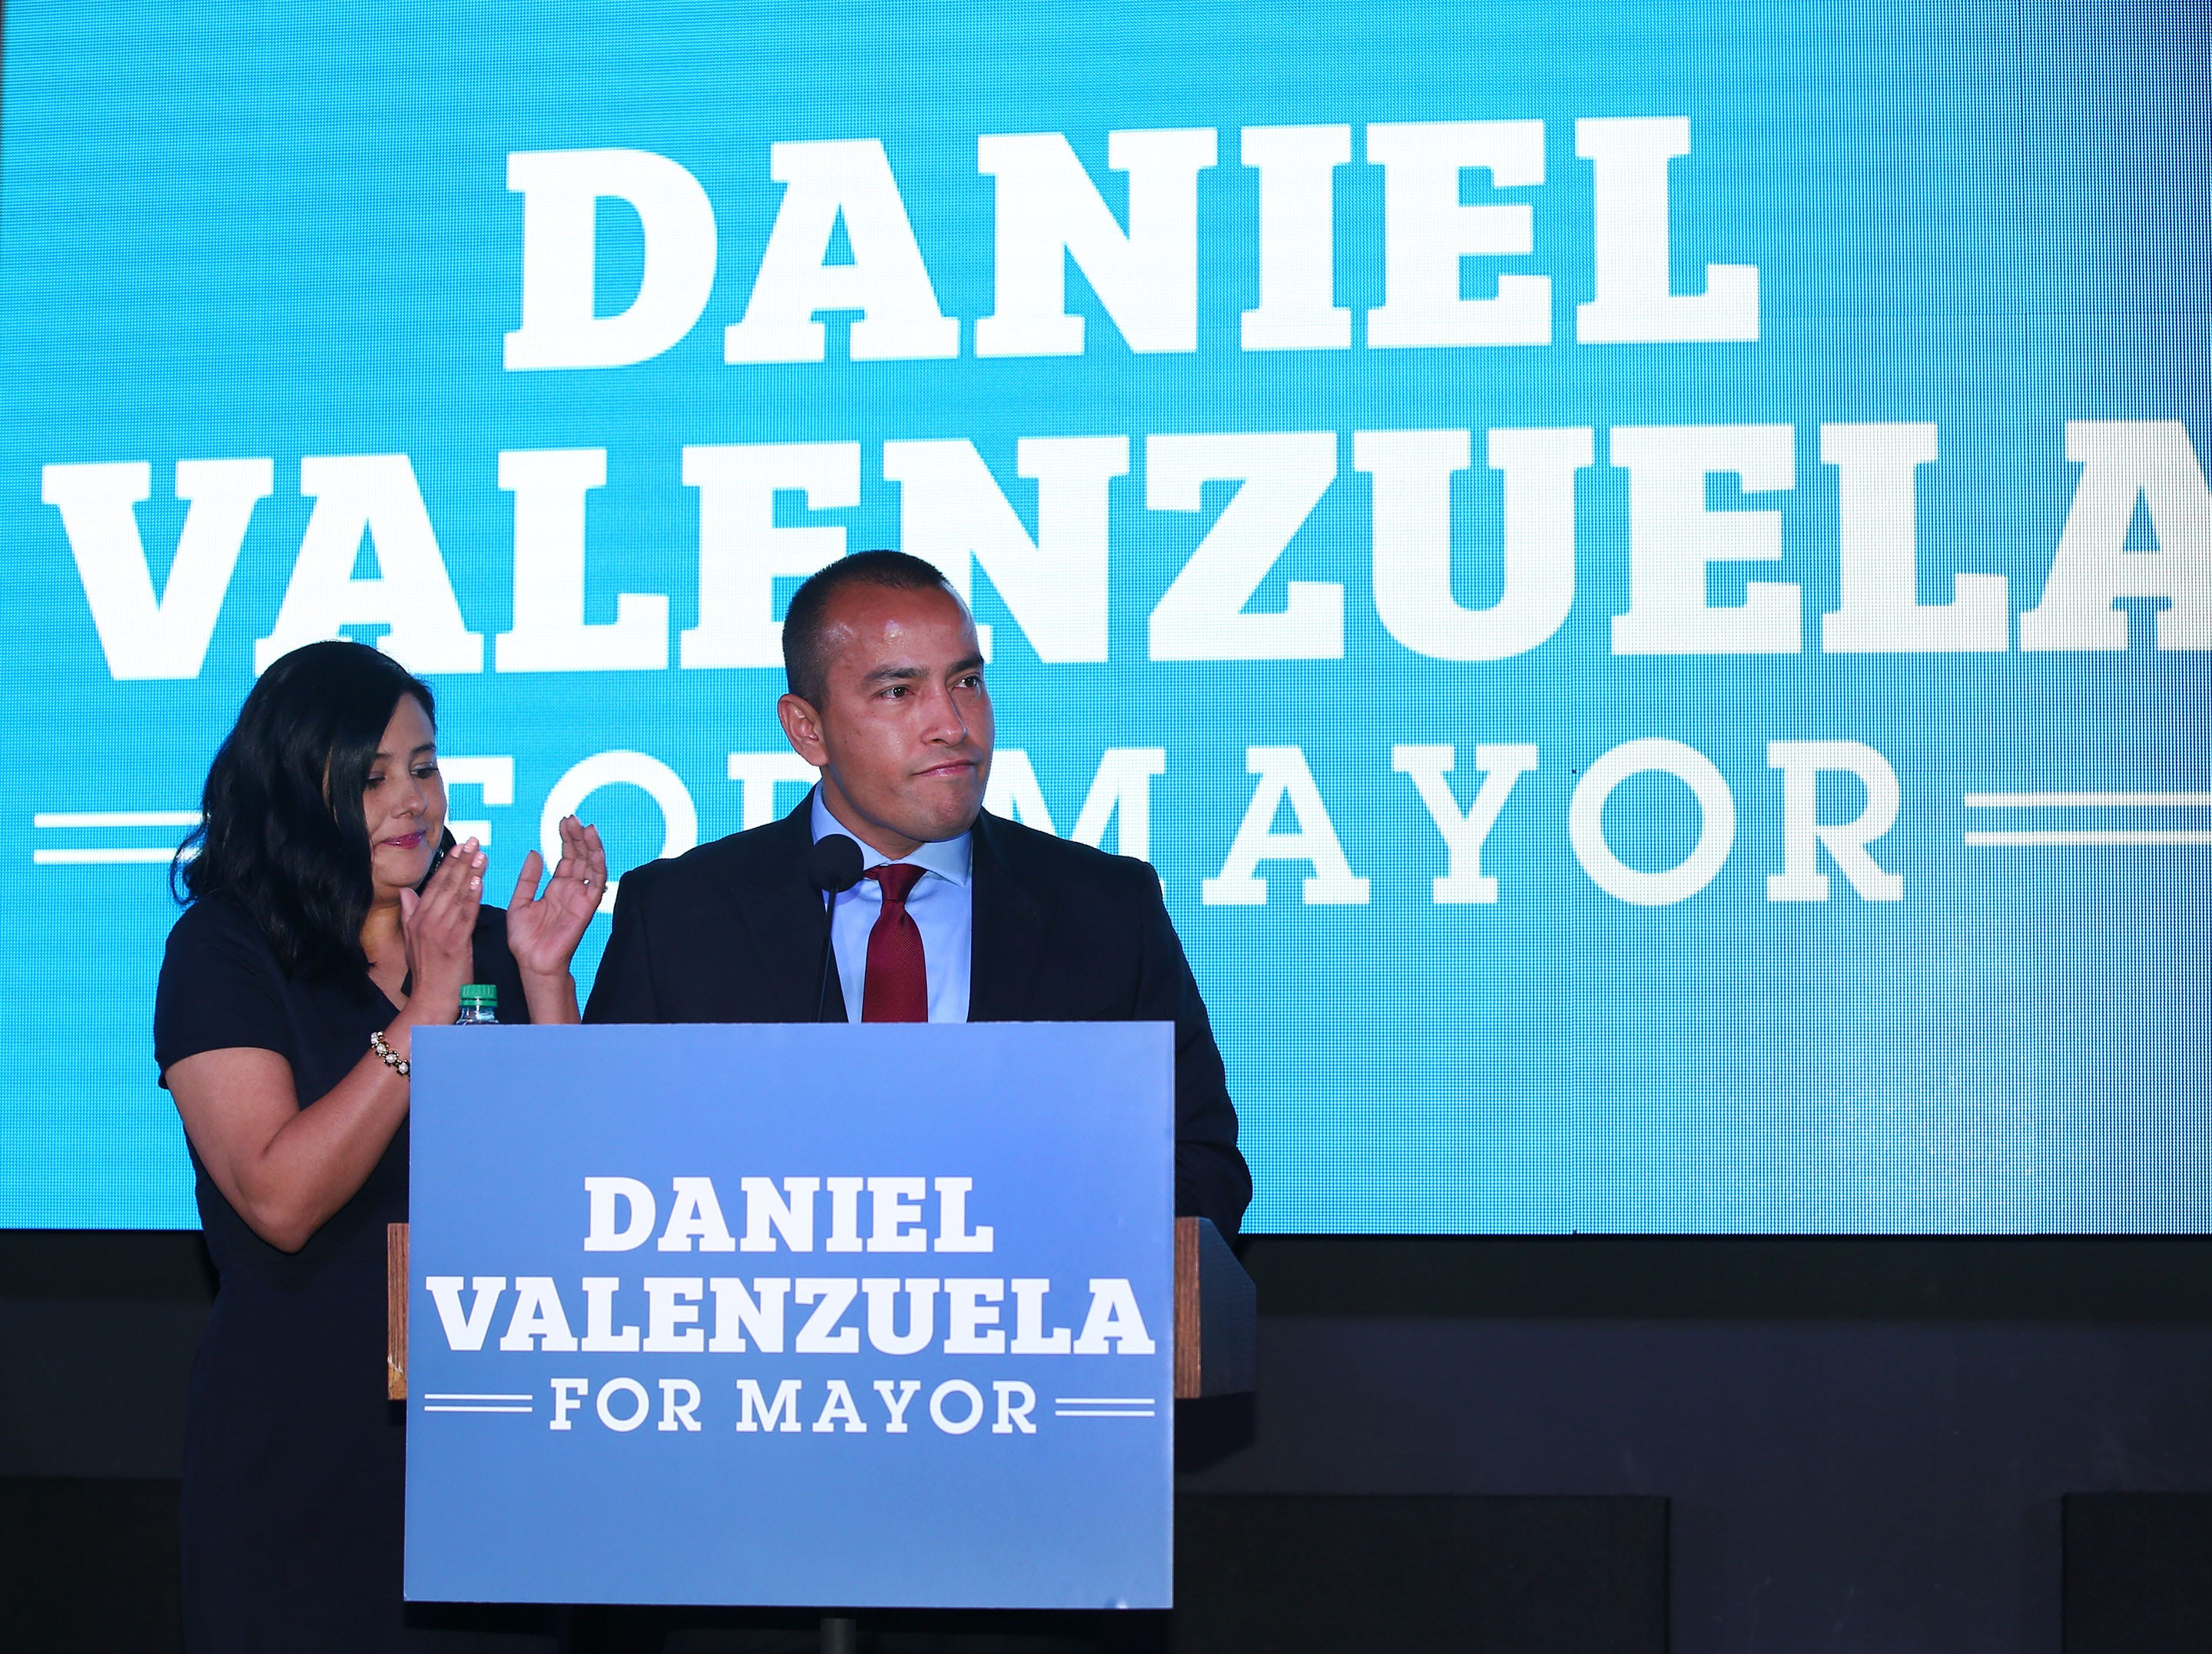 Daniel Valenzuela, candidate for Phoenix Mayor makes his concession speech with his wife Wendy at his side on March 12, 2019, in Phoenix.